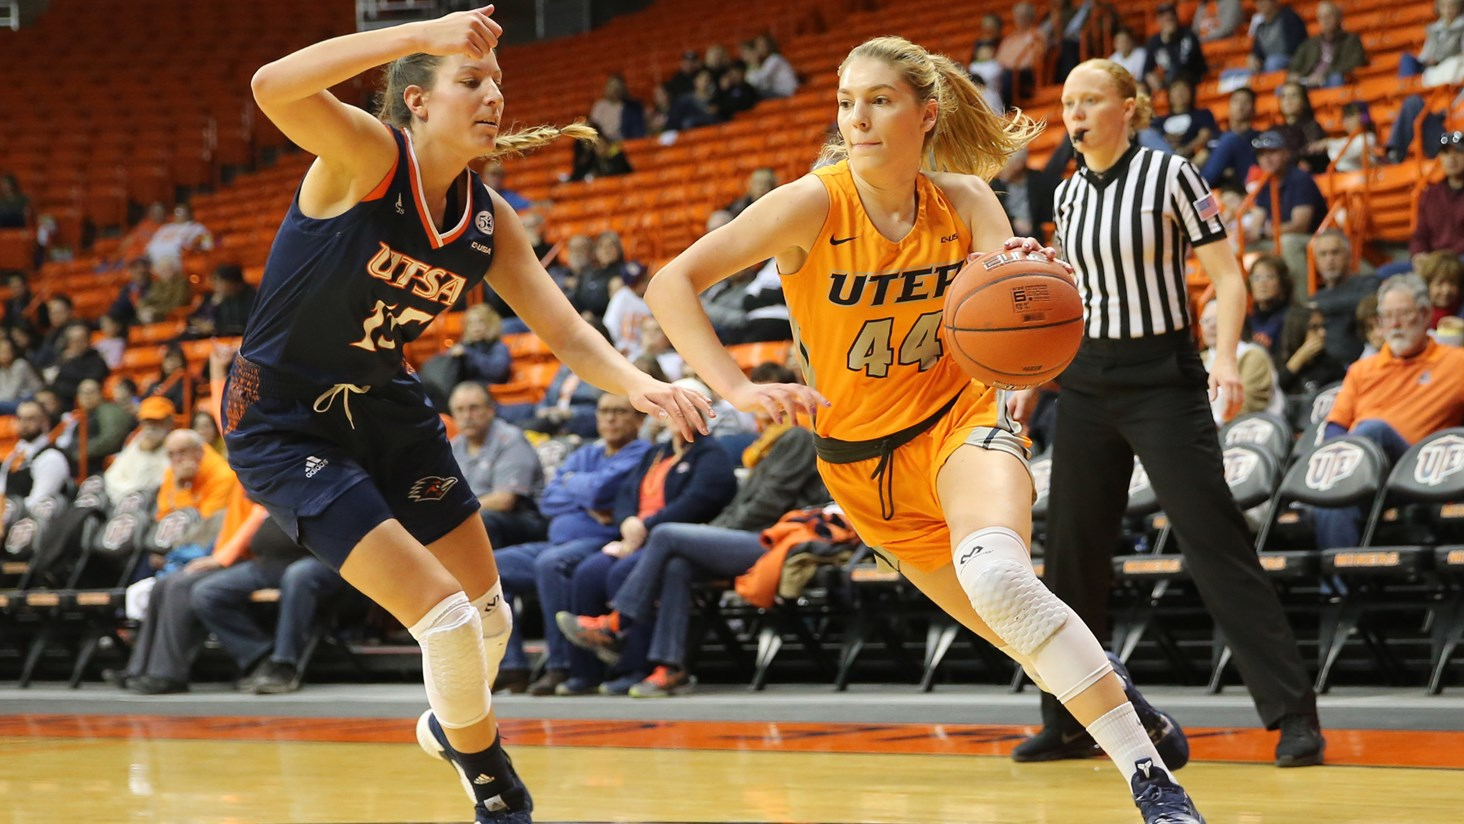 quality design 8c118 e8206 UTEP Women's Basketball Notes / Game 28 / At UAB - The ...